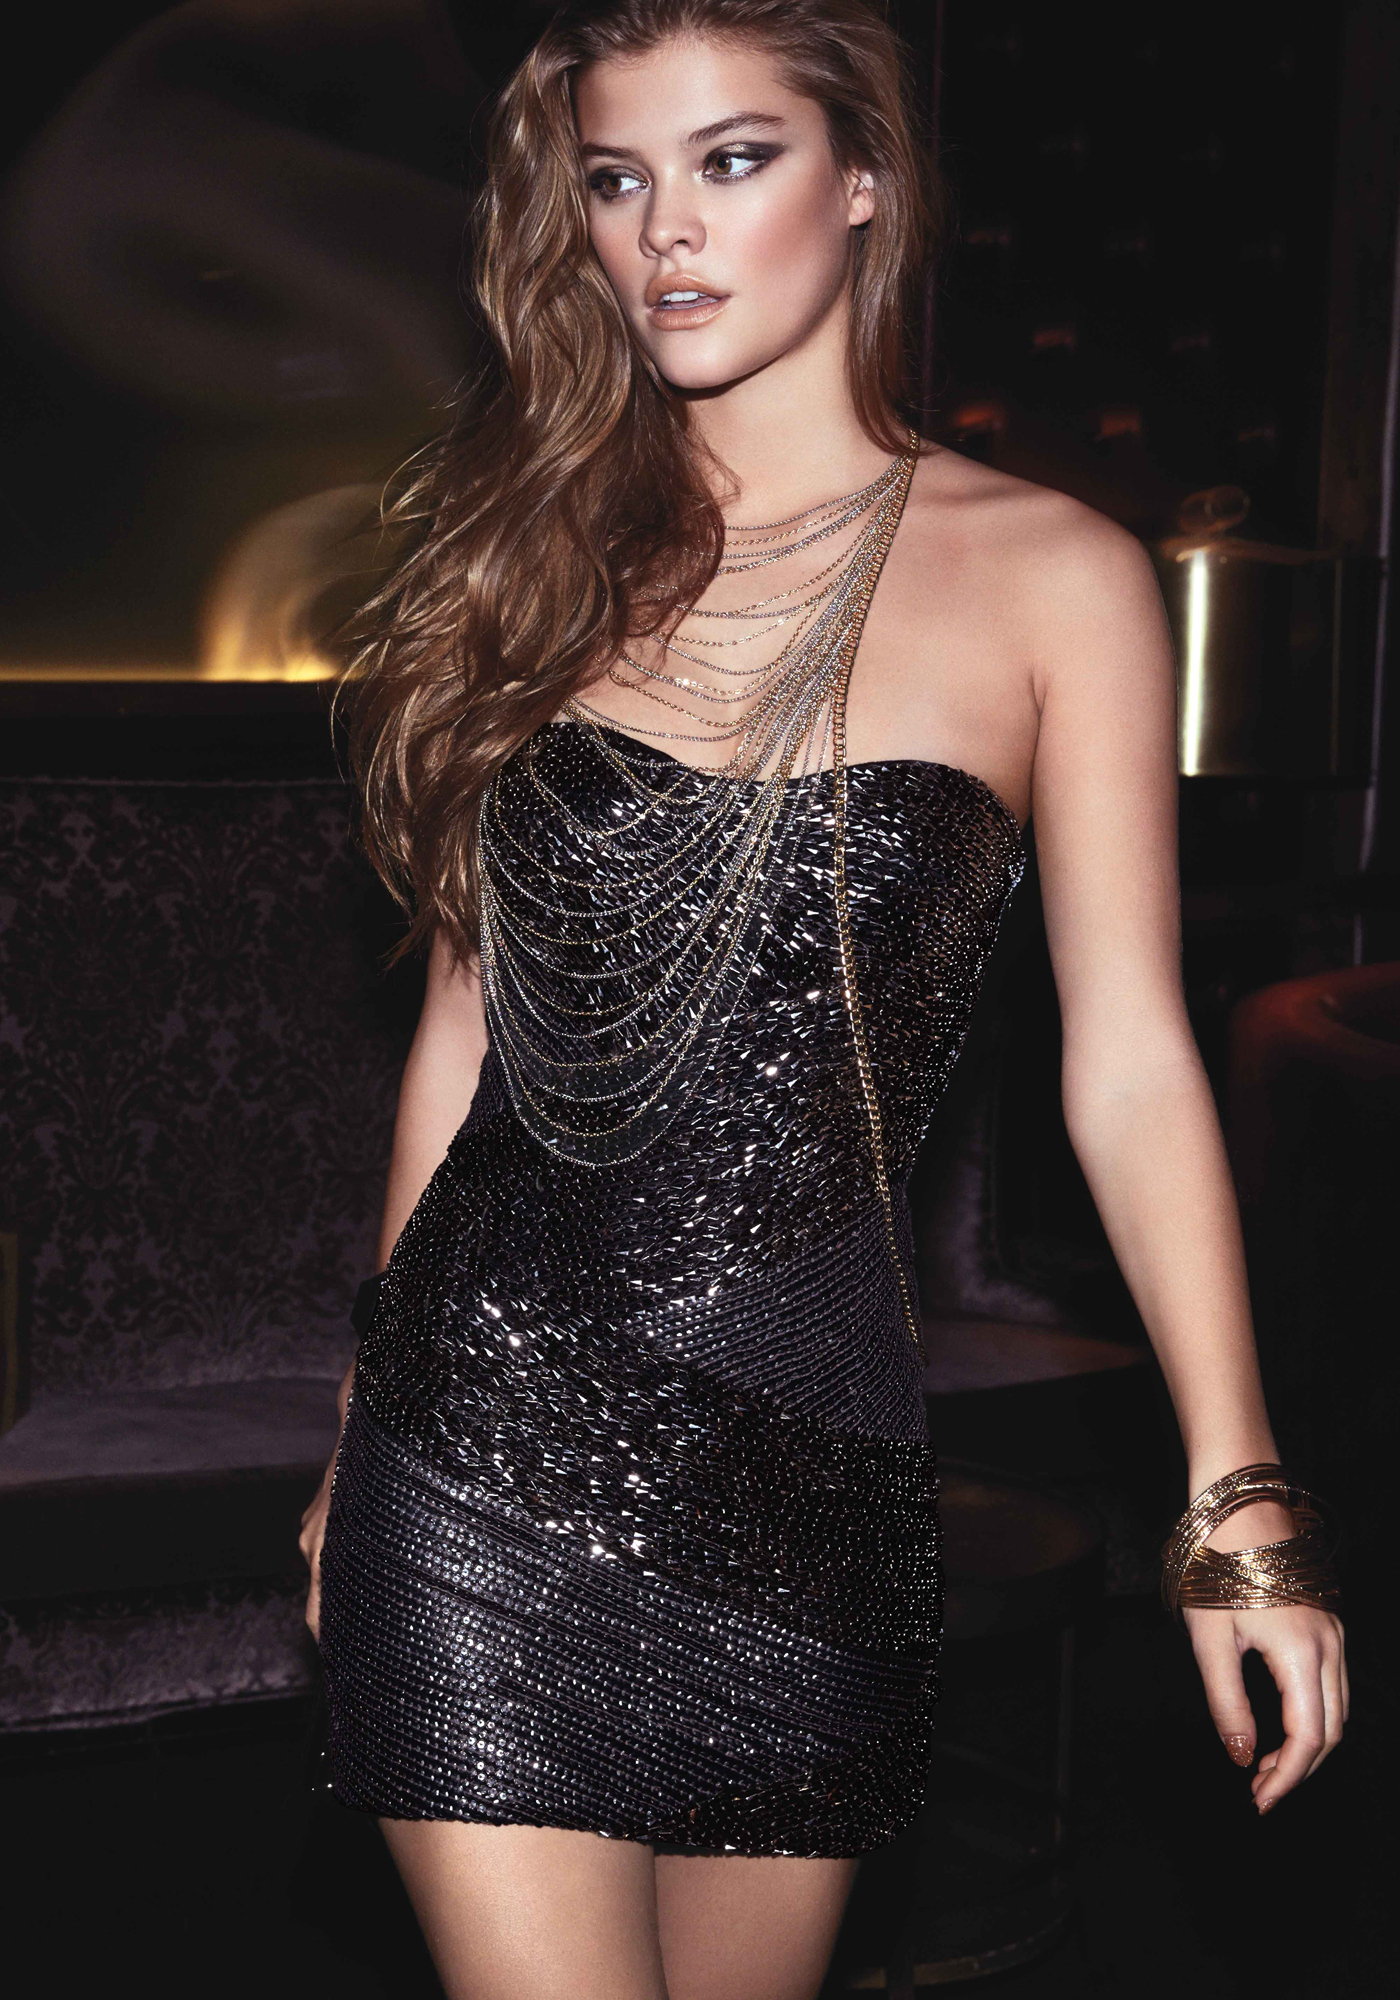 nina-agdal-bebe-new-years-eve-2013-01